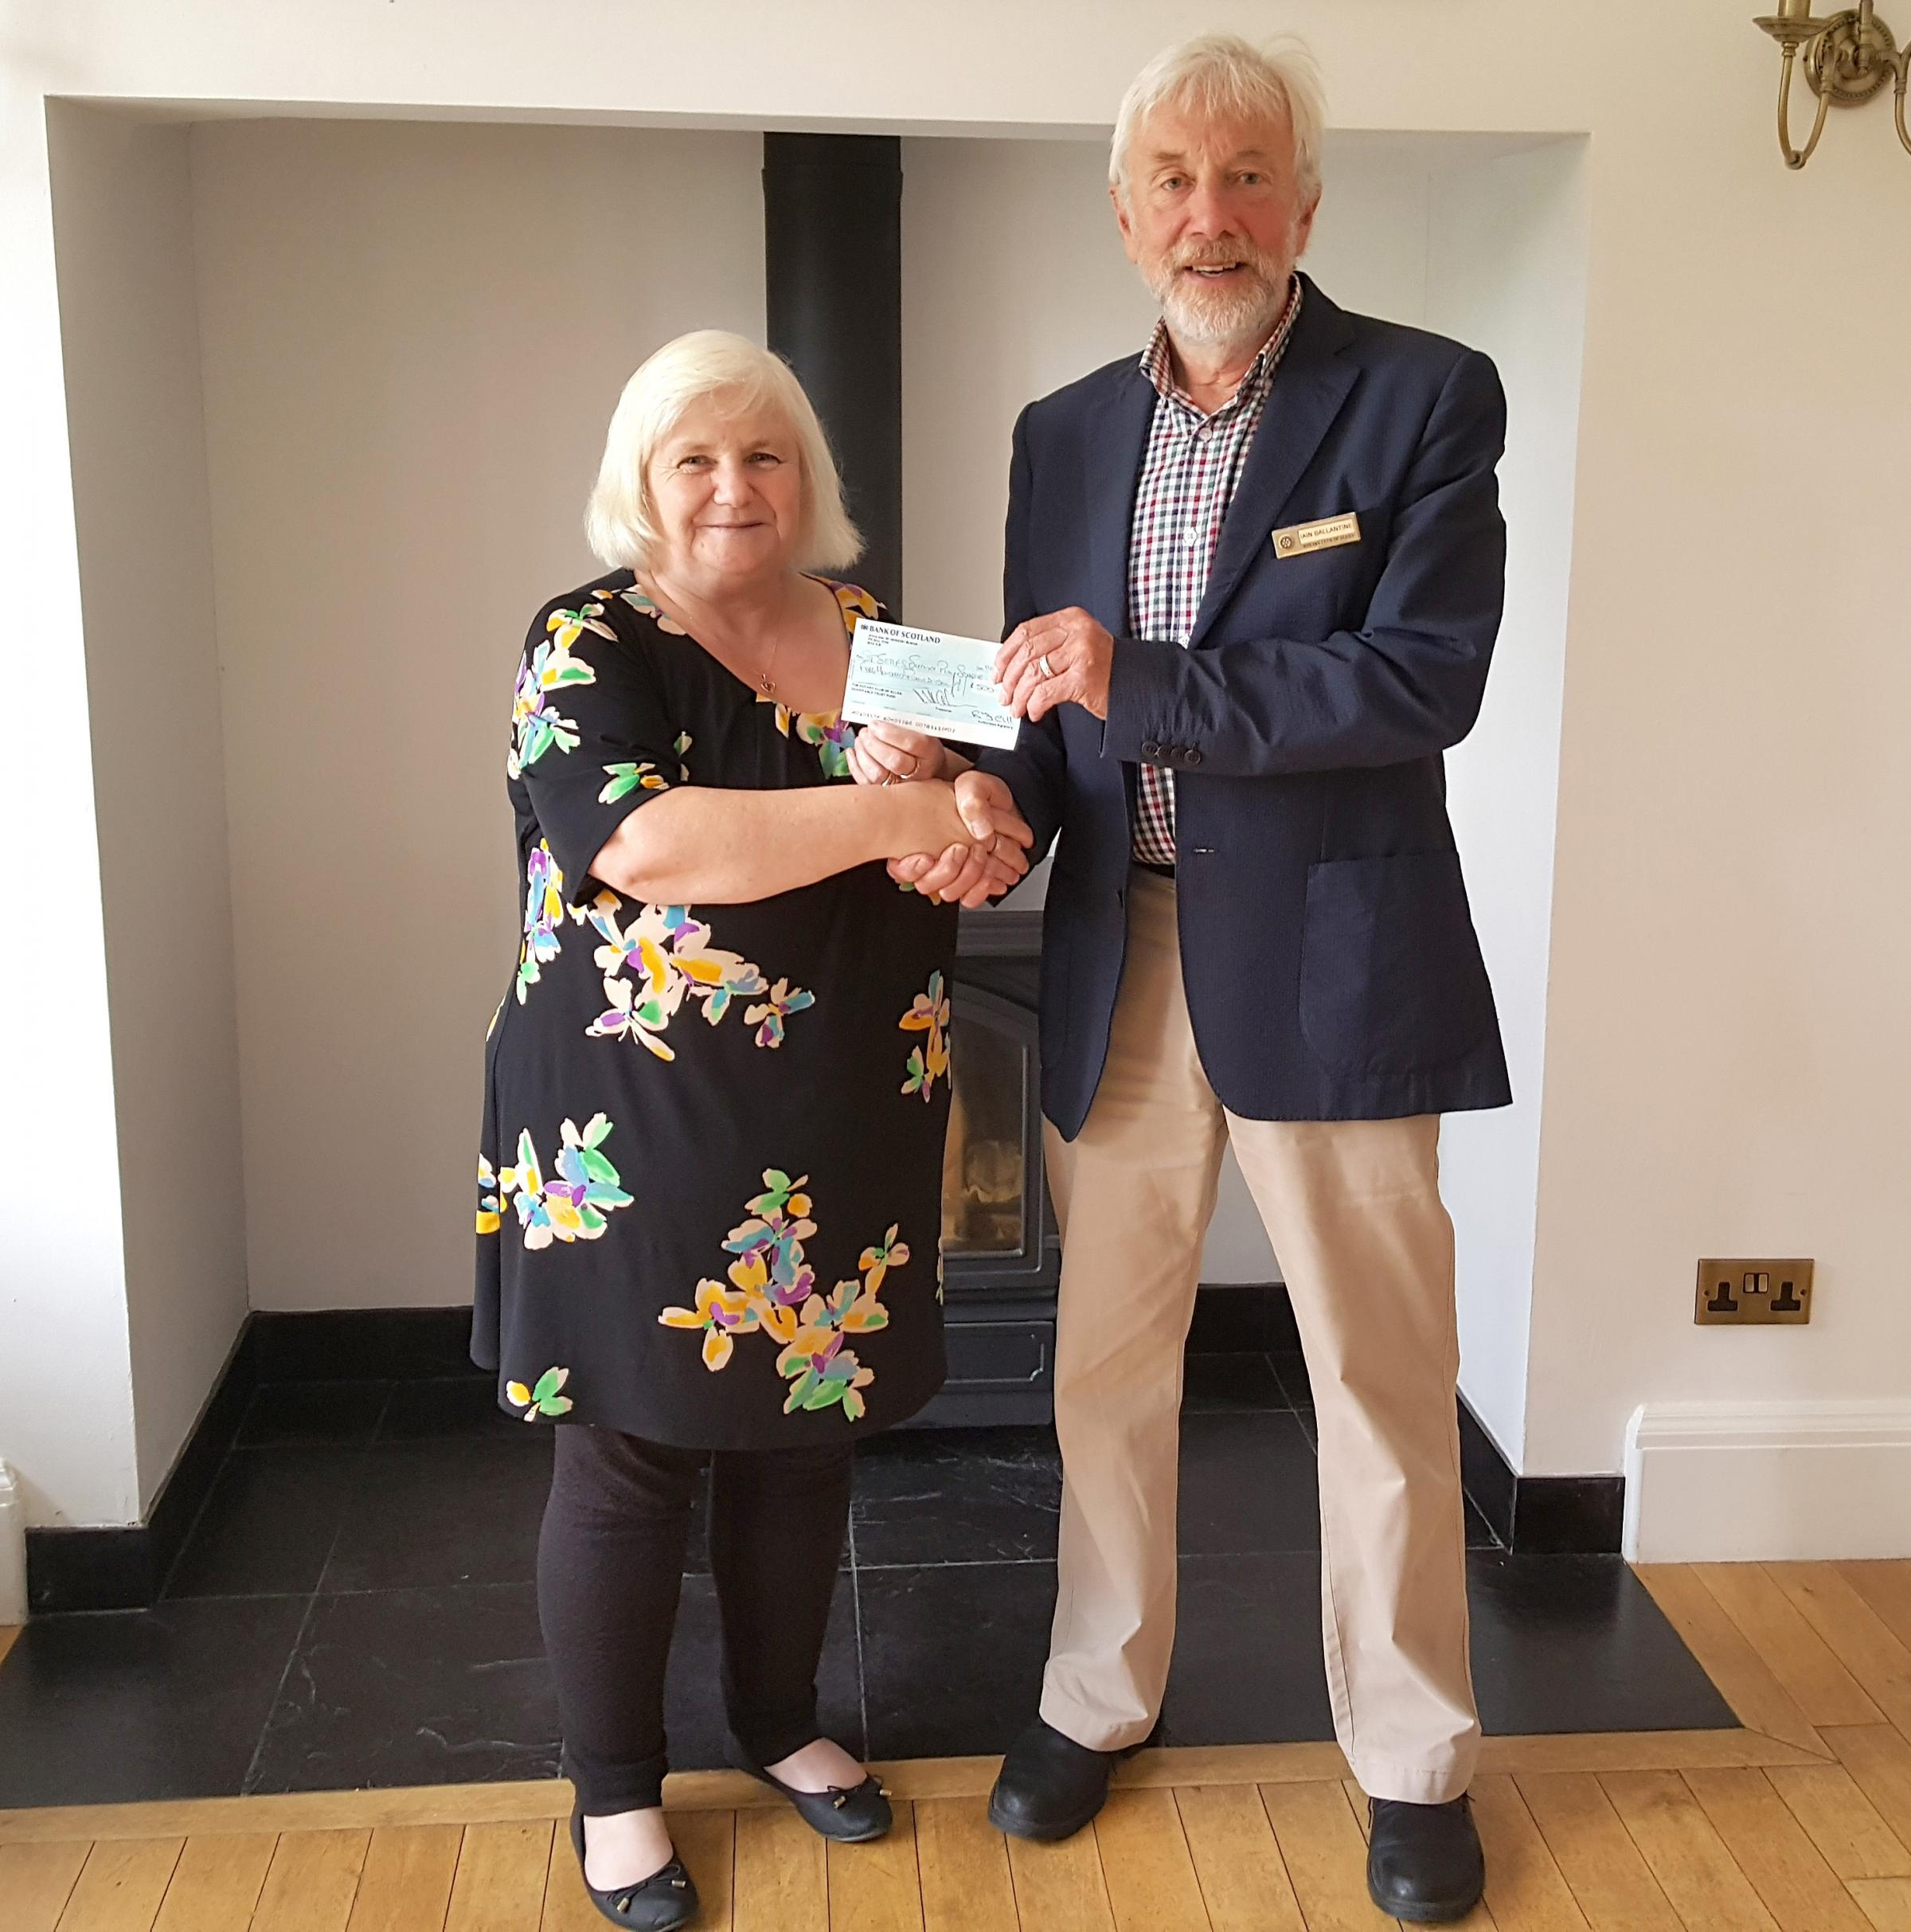 Alloa Rotary Club have made a donation of £500 to Tullibody Summer Playscheme